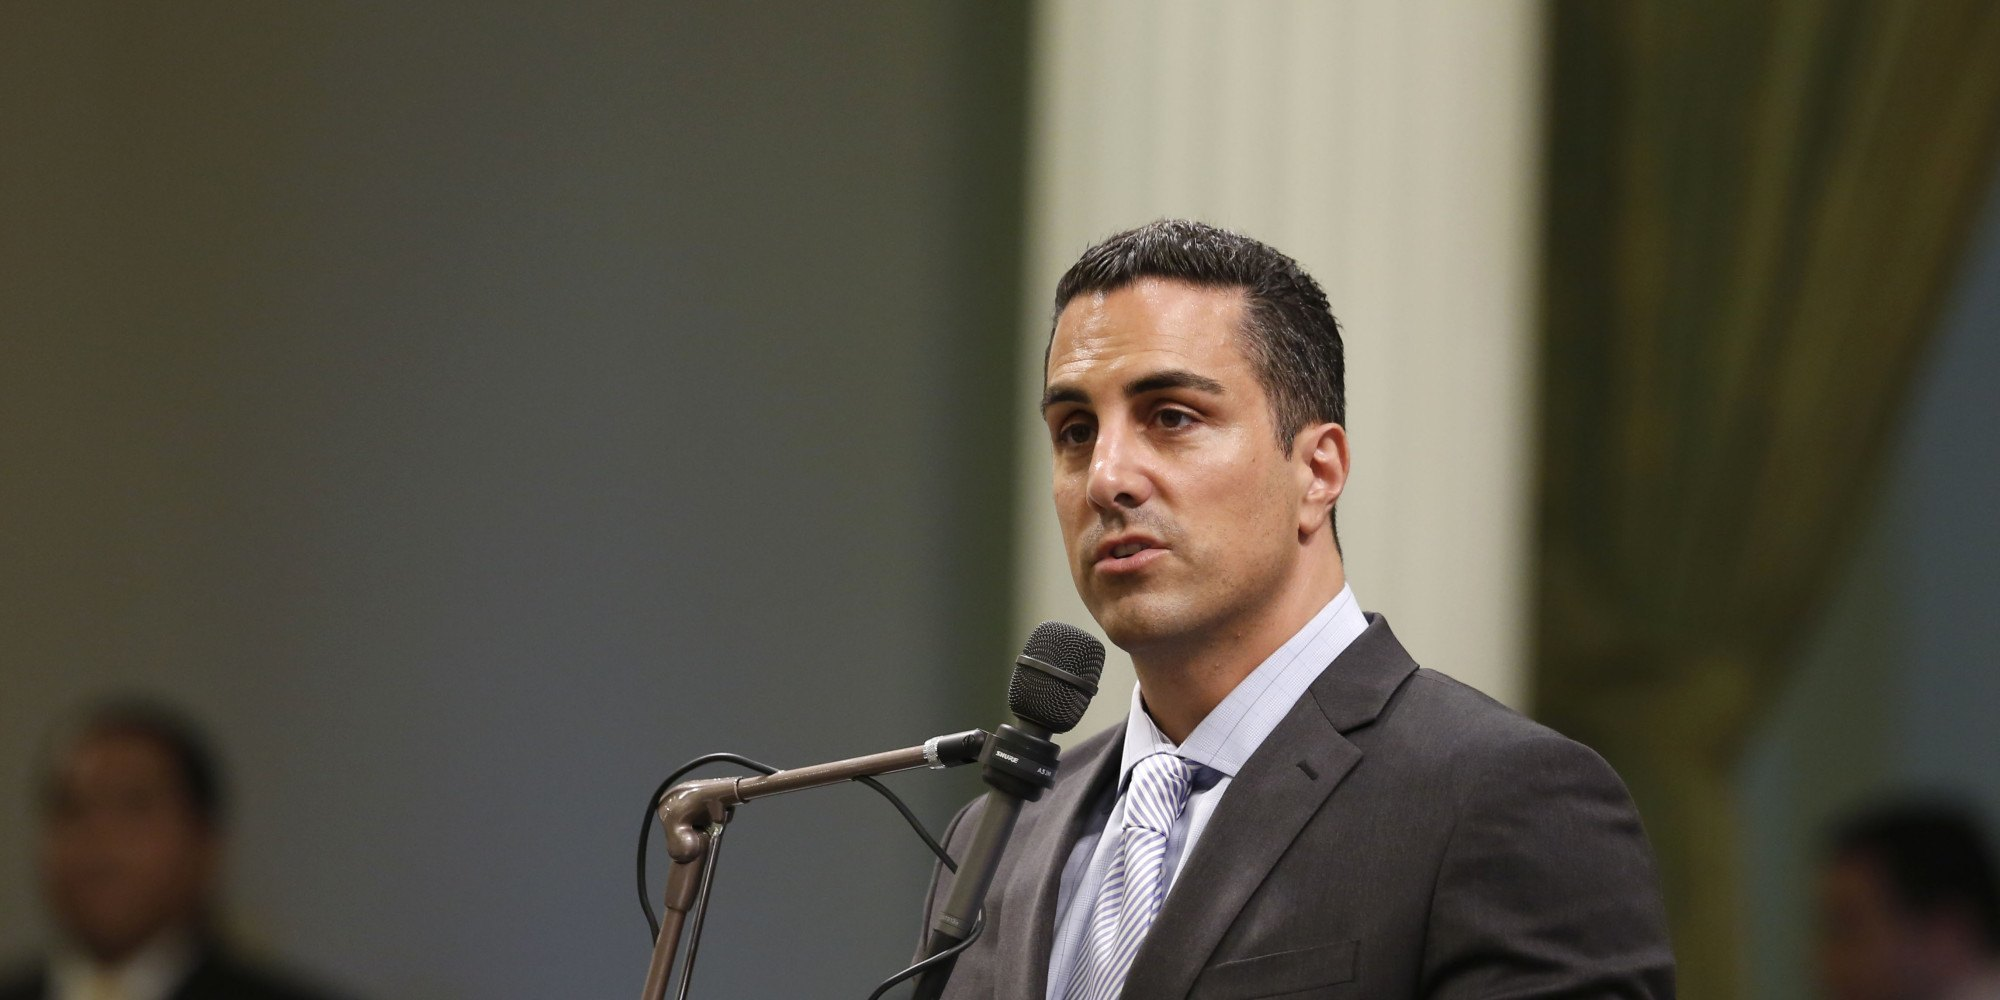 California Assemblyman Mike Gatto online poker bill